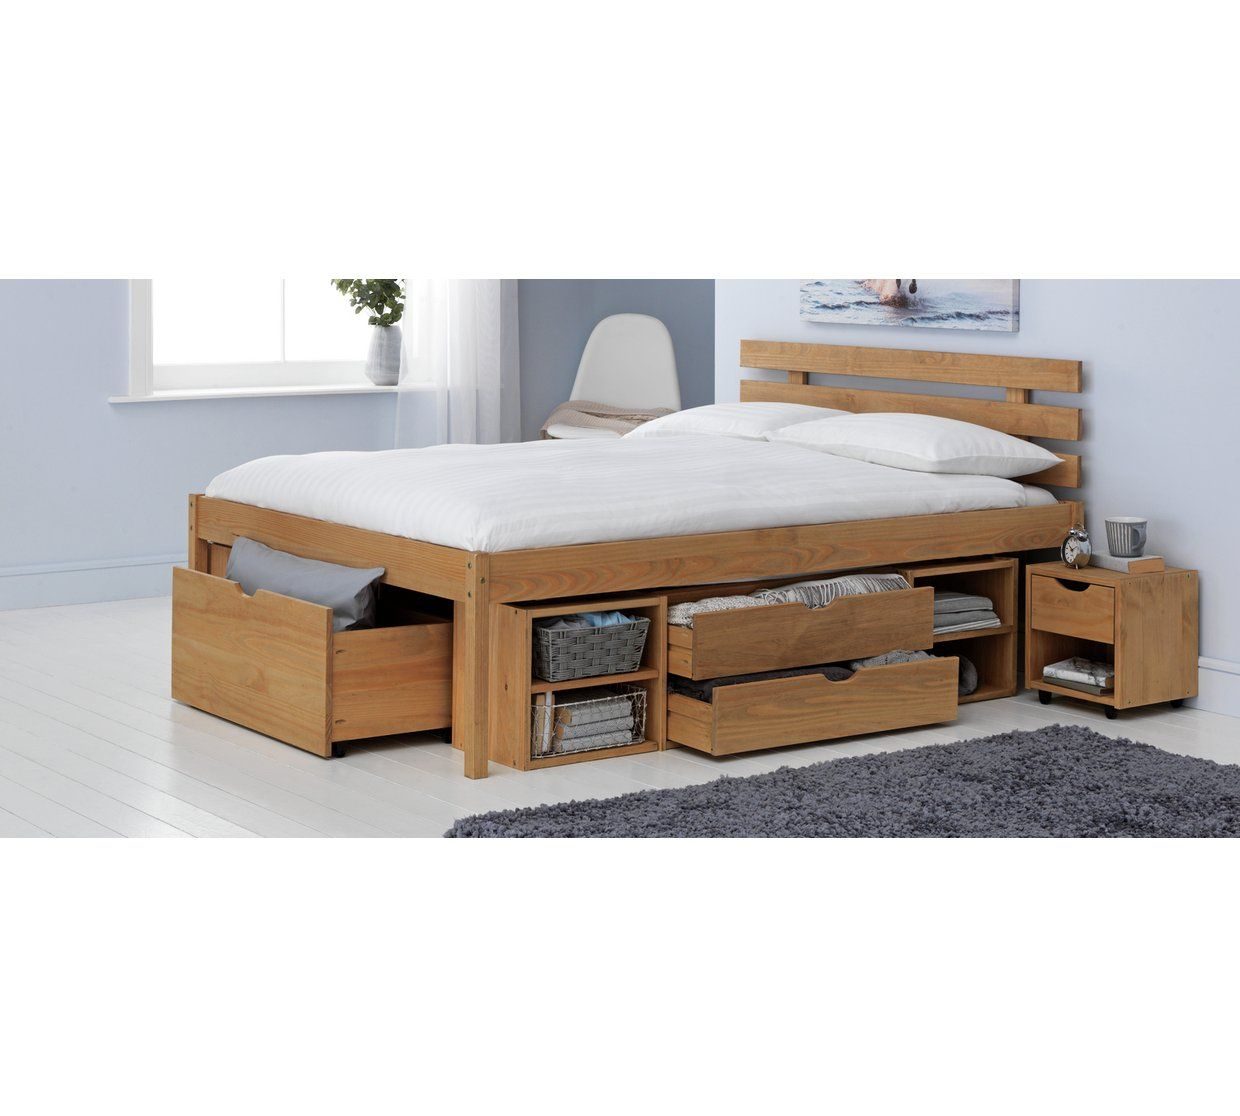 Buy Collection Ultimate Storage Ii Small Double Bed Frame At Argos Co Uk Your Online Shop For Bed F Double Bed Frame Small Double Bed Frames Small Double Bed